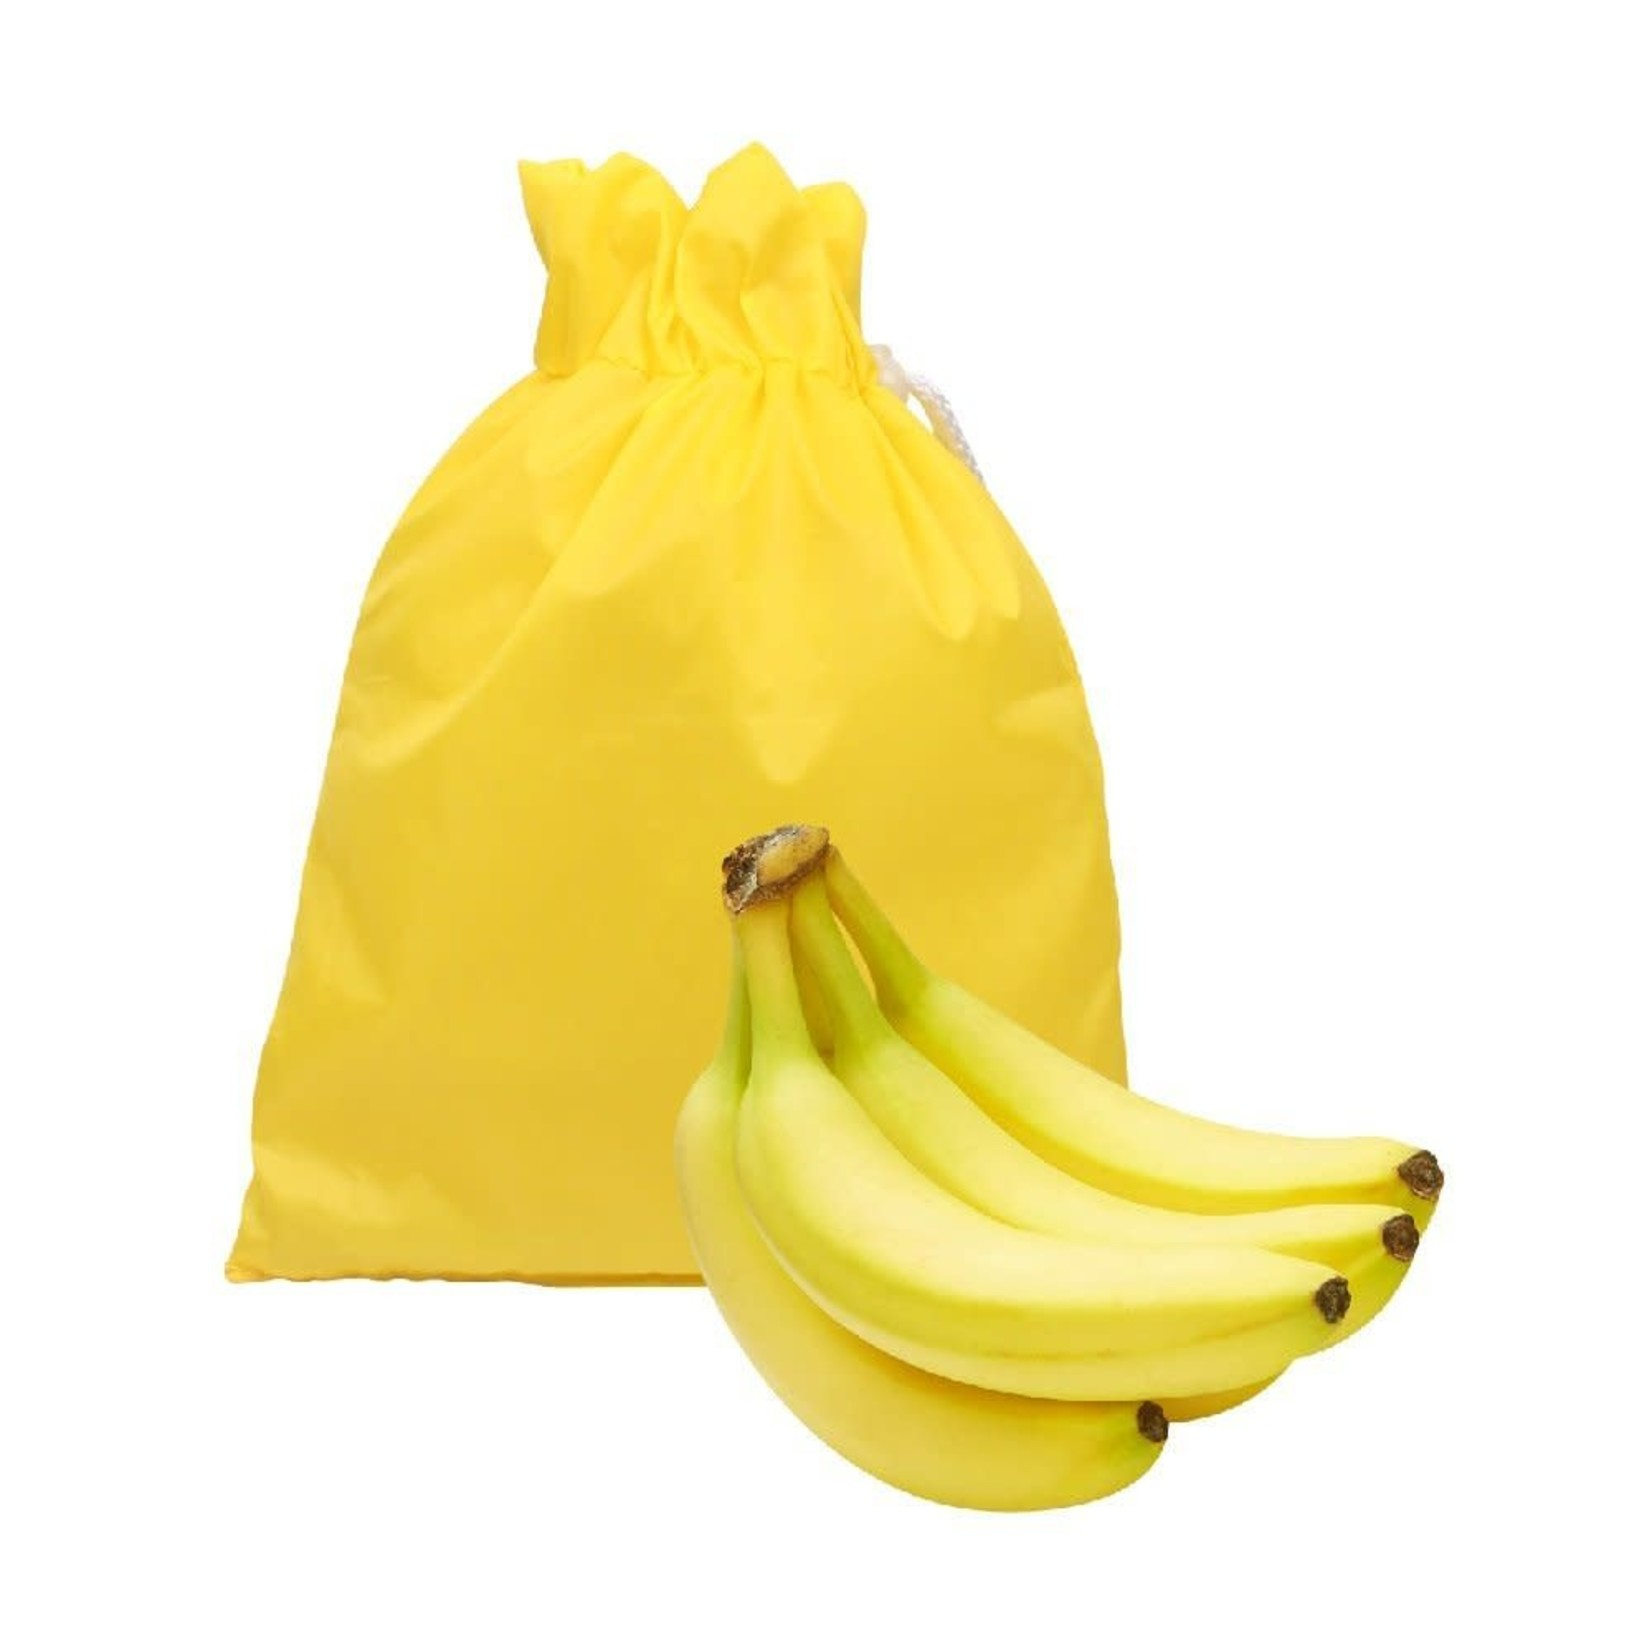 Eco Basics Eco Basics Banana Bag